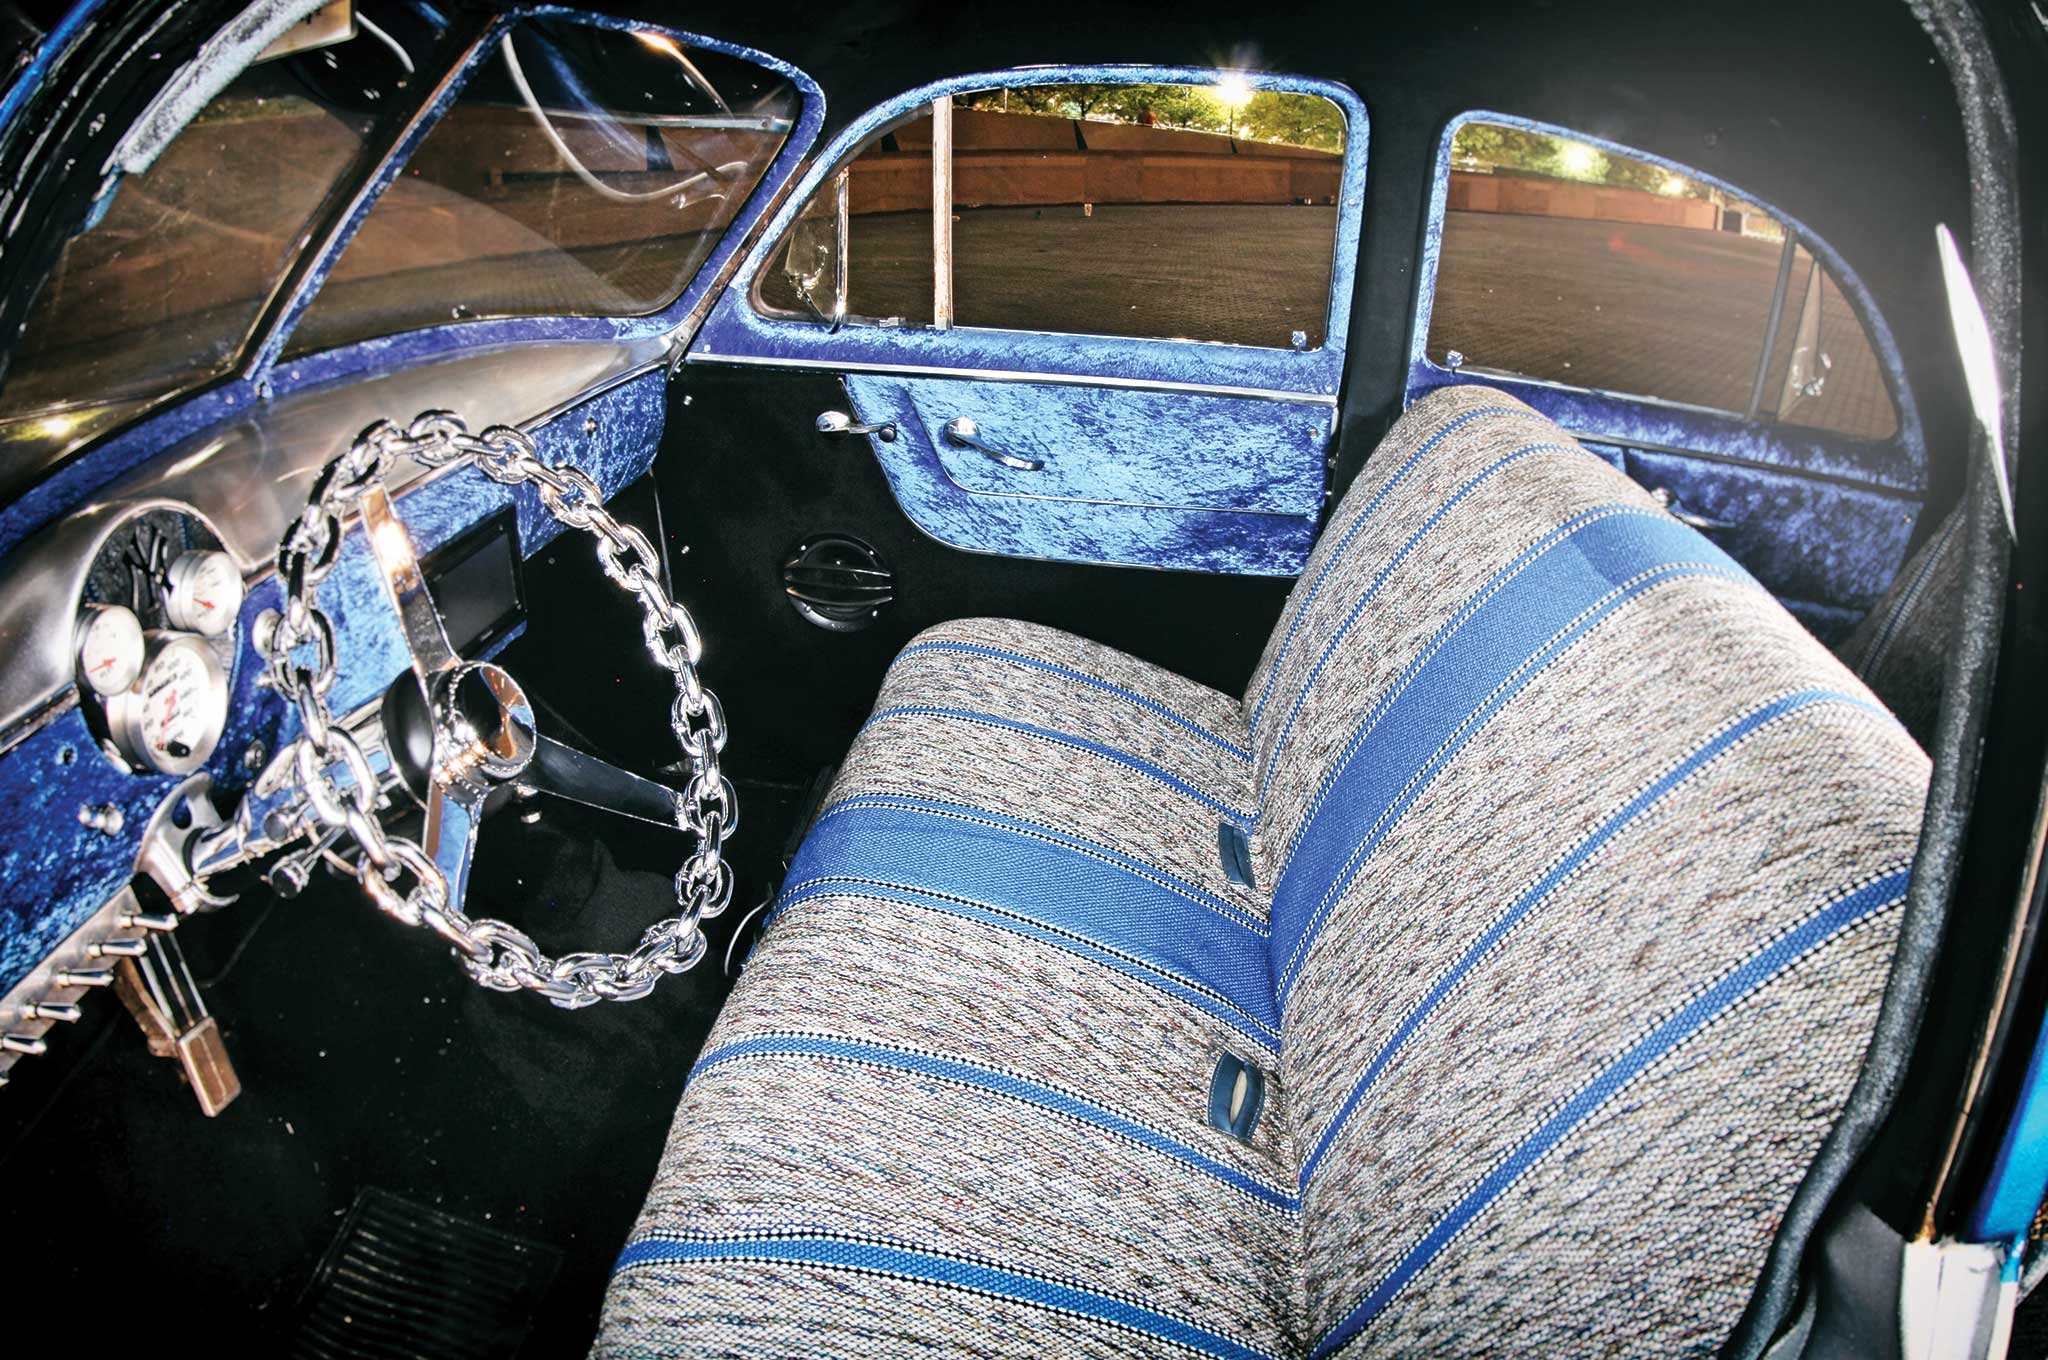 Lowrider Car Wallpaper 1950 Chevrolet Styleline Keeping It In The Family Lowrider